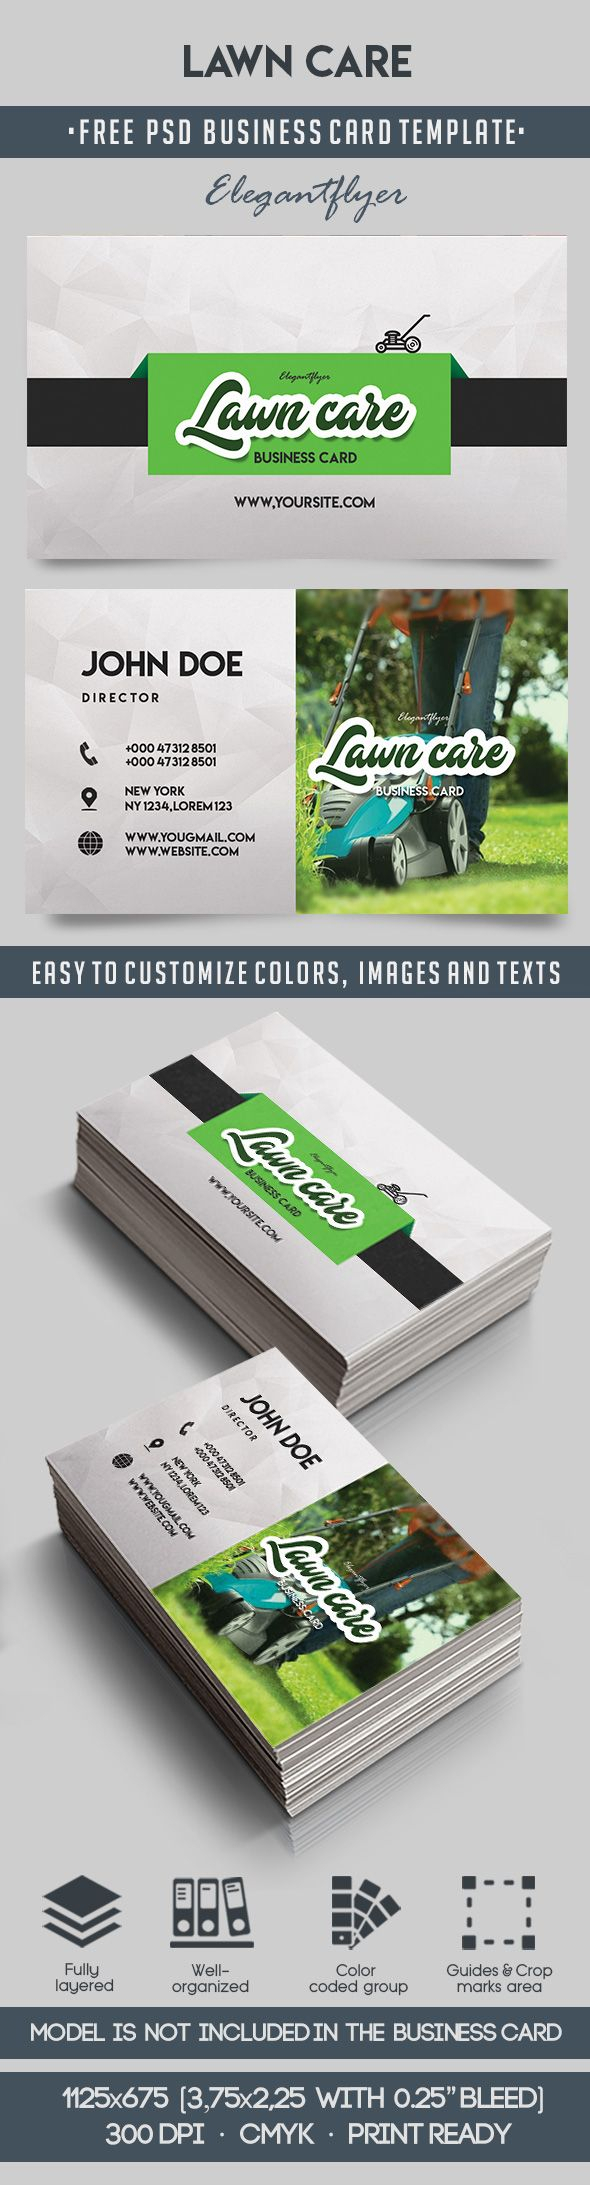 Lawn Care – Free Business Card Templates Psd Regarding Lawn Care Business Cards Templates Free